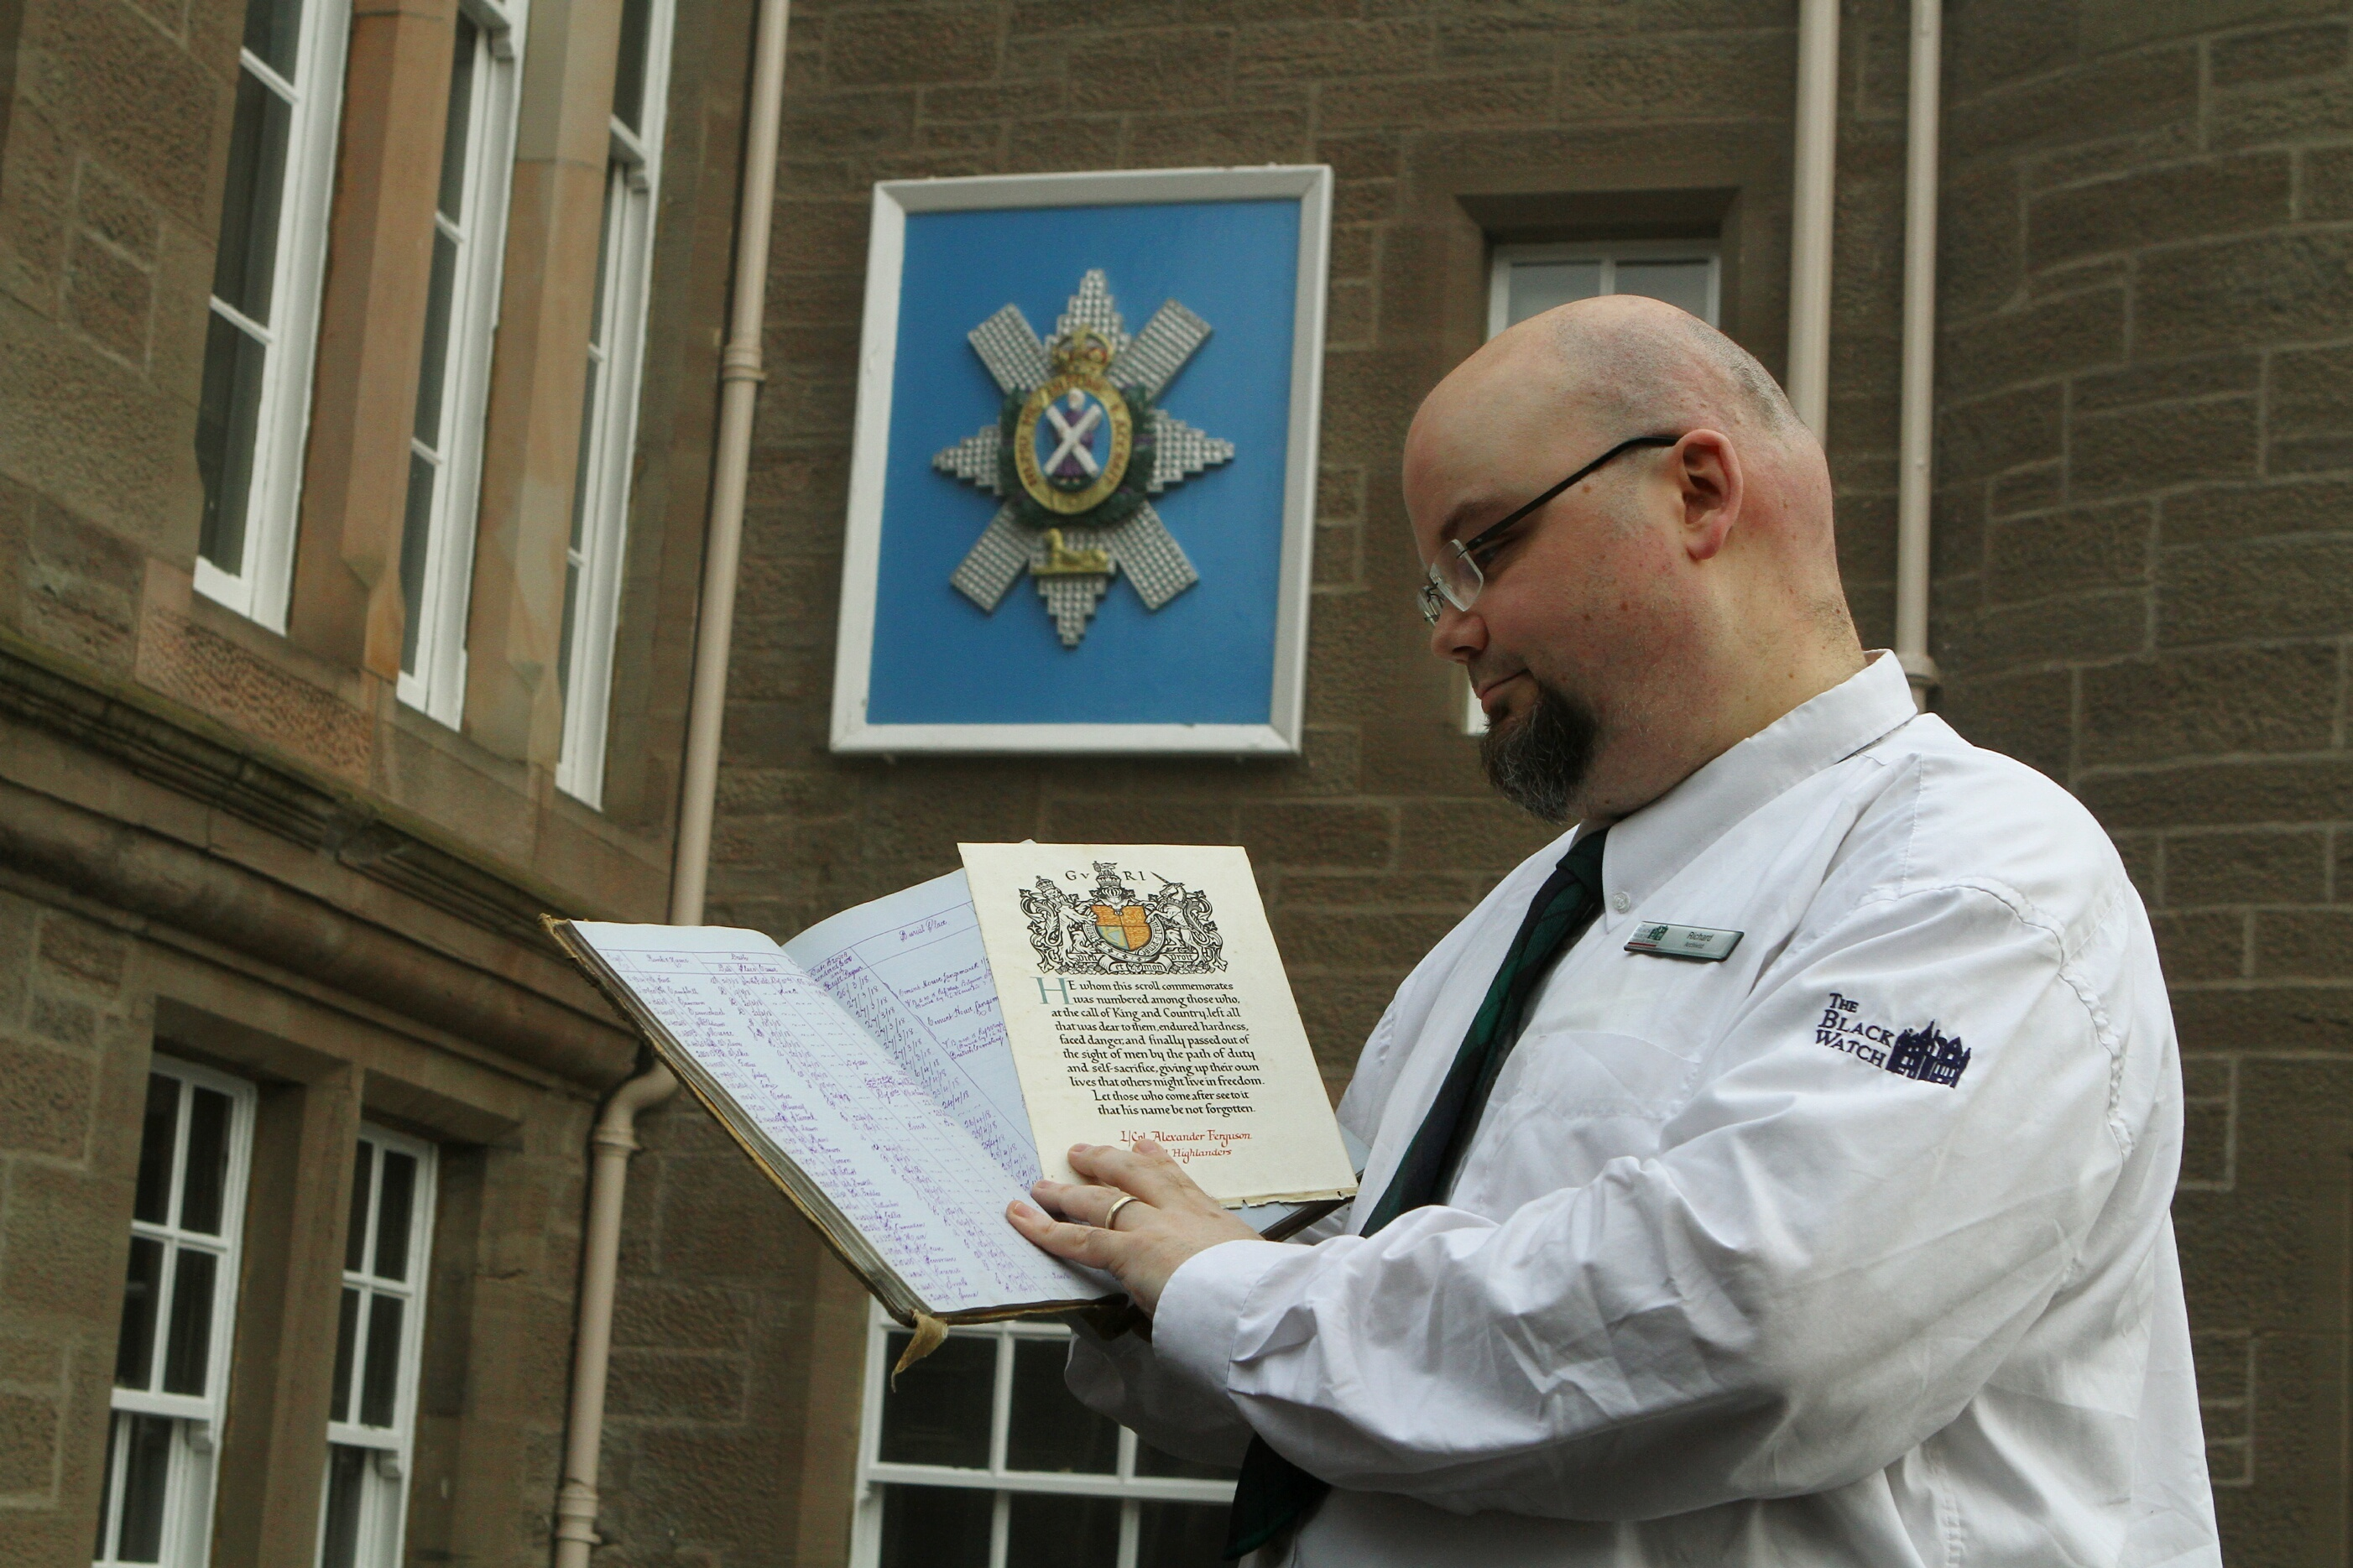 Richard McKenzie, Archivist at the Black Watch Museum, holding  the Burial Book of the 1st Battalion Black Watch and the Scroll Of Honour from L.Cpl. Alexander Ferguson of the Royal Highlanders.